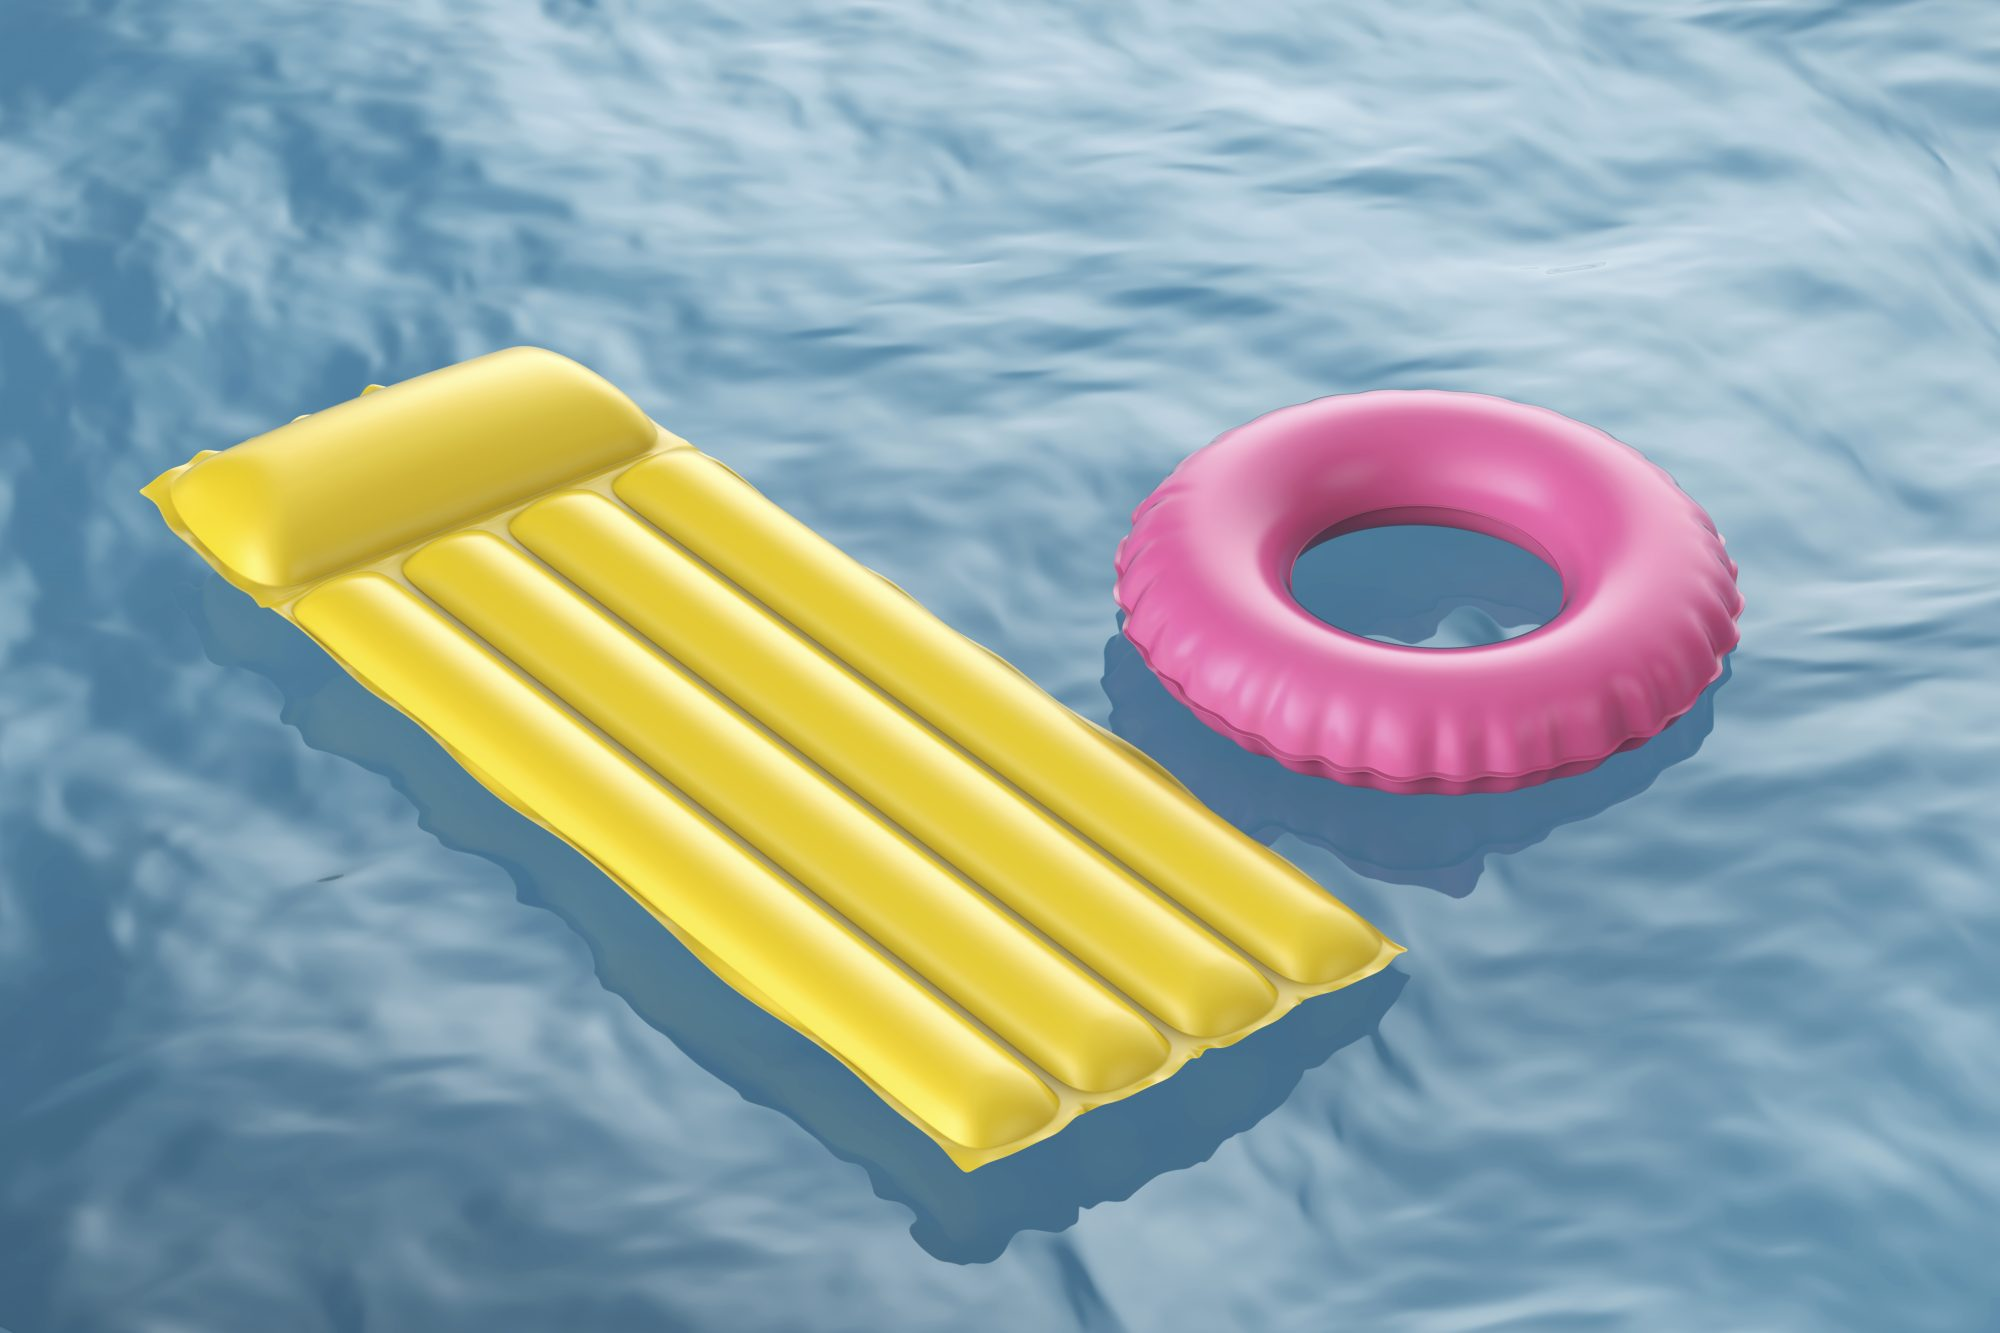 yellow and pink inflatable pool raft in pool